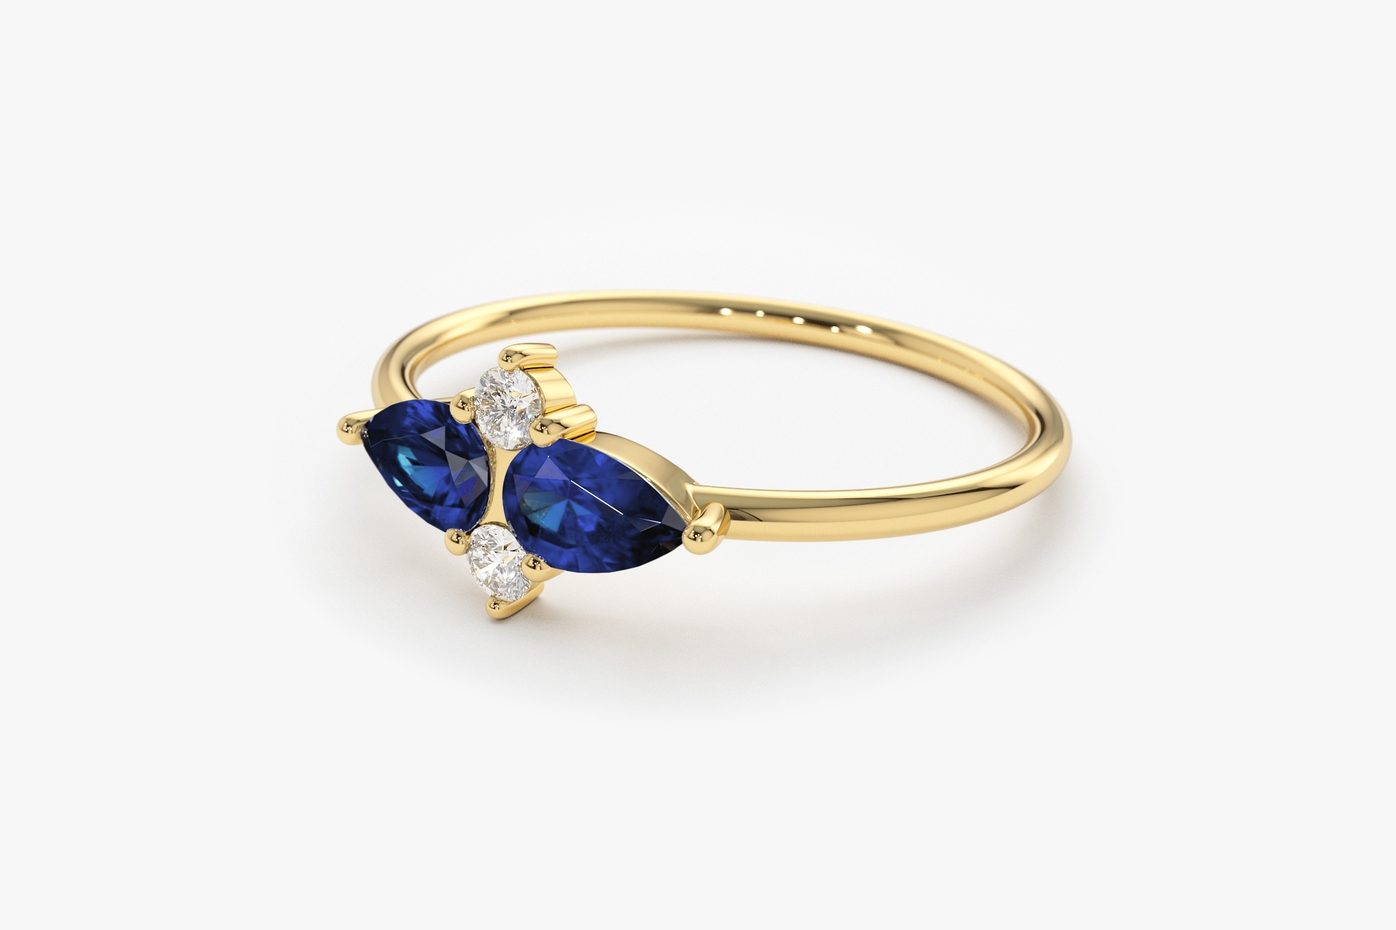 Yellow Gold, Sapphire, Diamond, Pear Shape